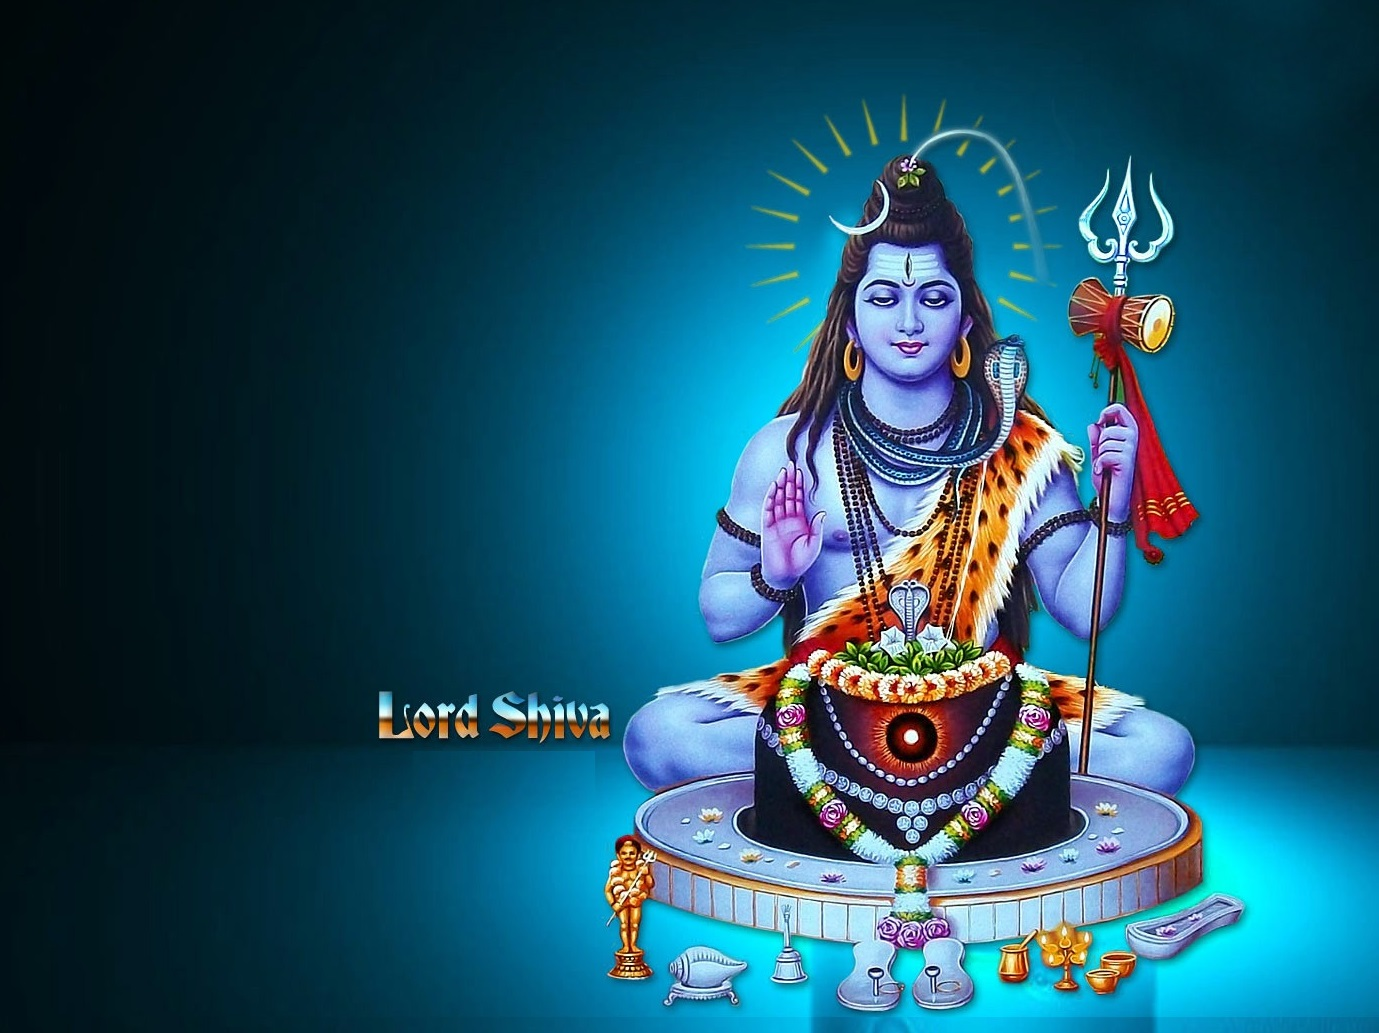 maha shivratri Maha shivratri is an important festival for devotees of lord shiva shivratri (or the night of lord shiva) occurs on every 14th night of the new moon.